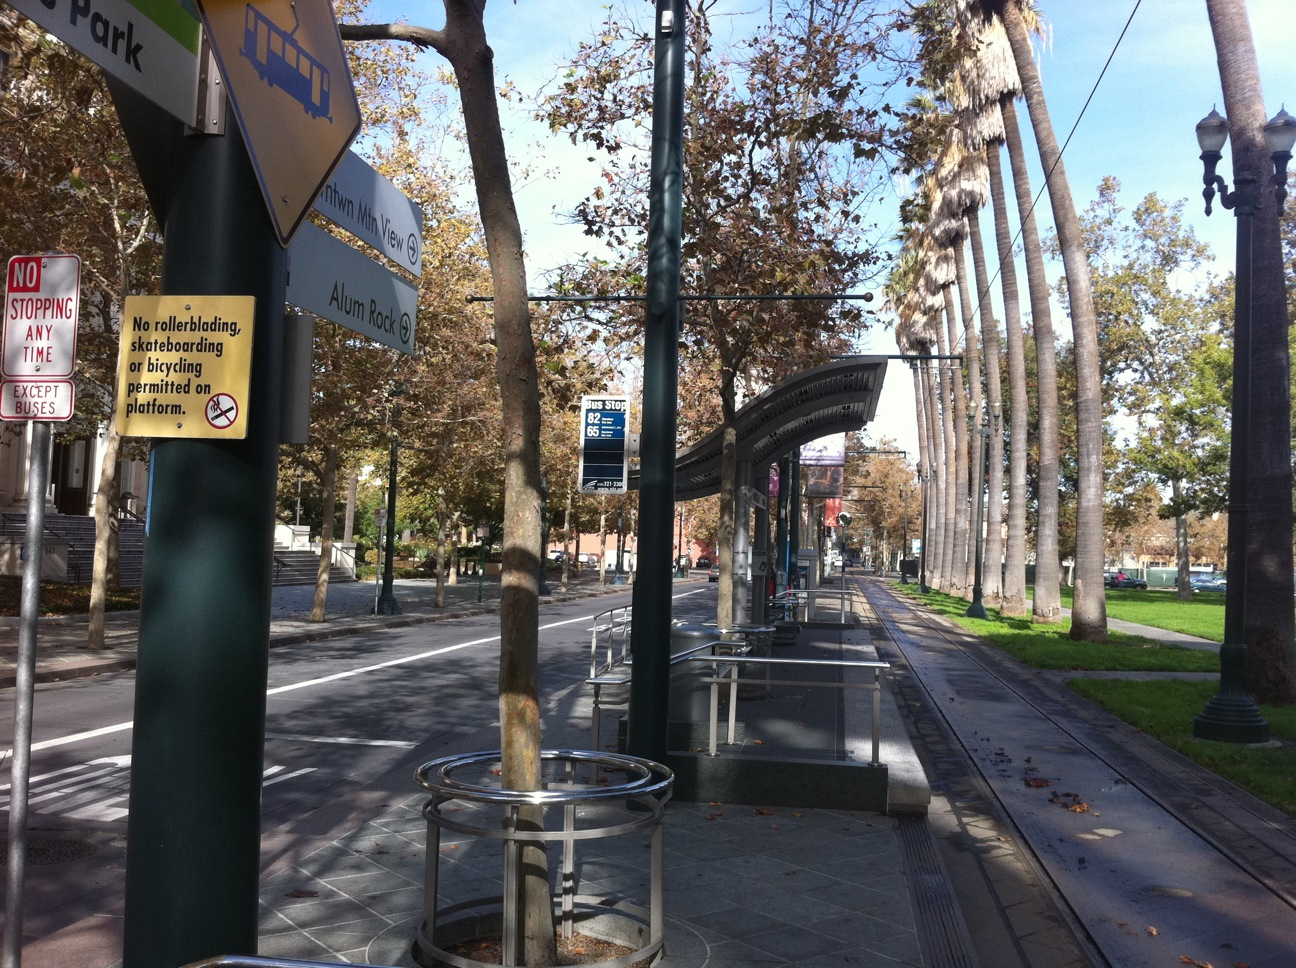 A multi-modal street in downtown San Jose serving light rail and buses in exclusive lanes, as well as private automobiles.